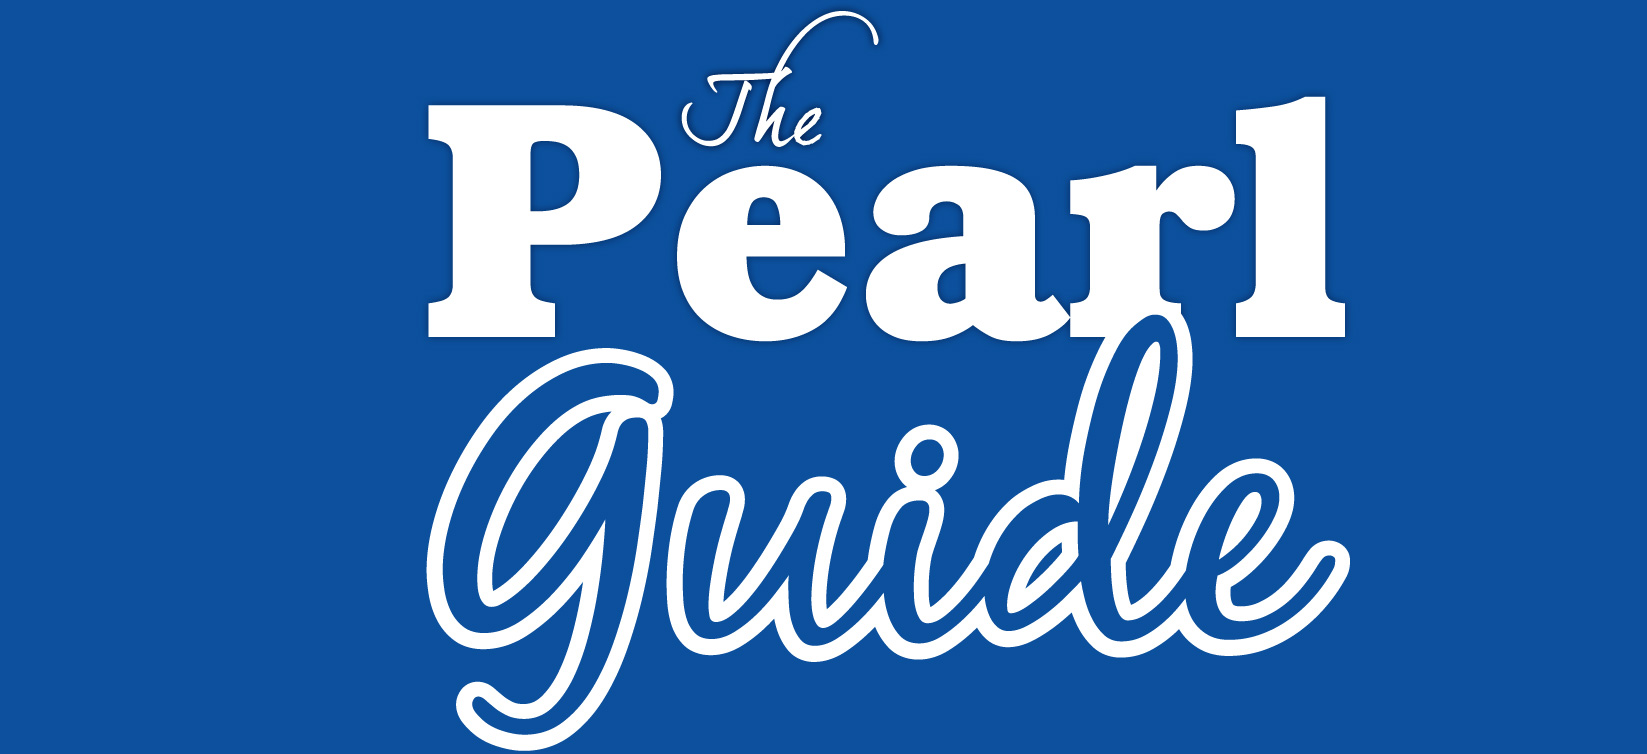 About The Pearl Guide